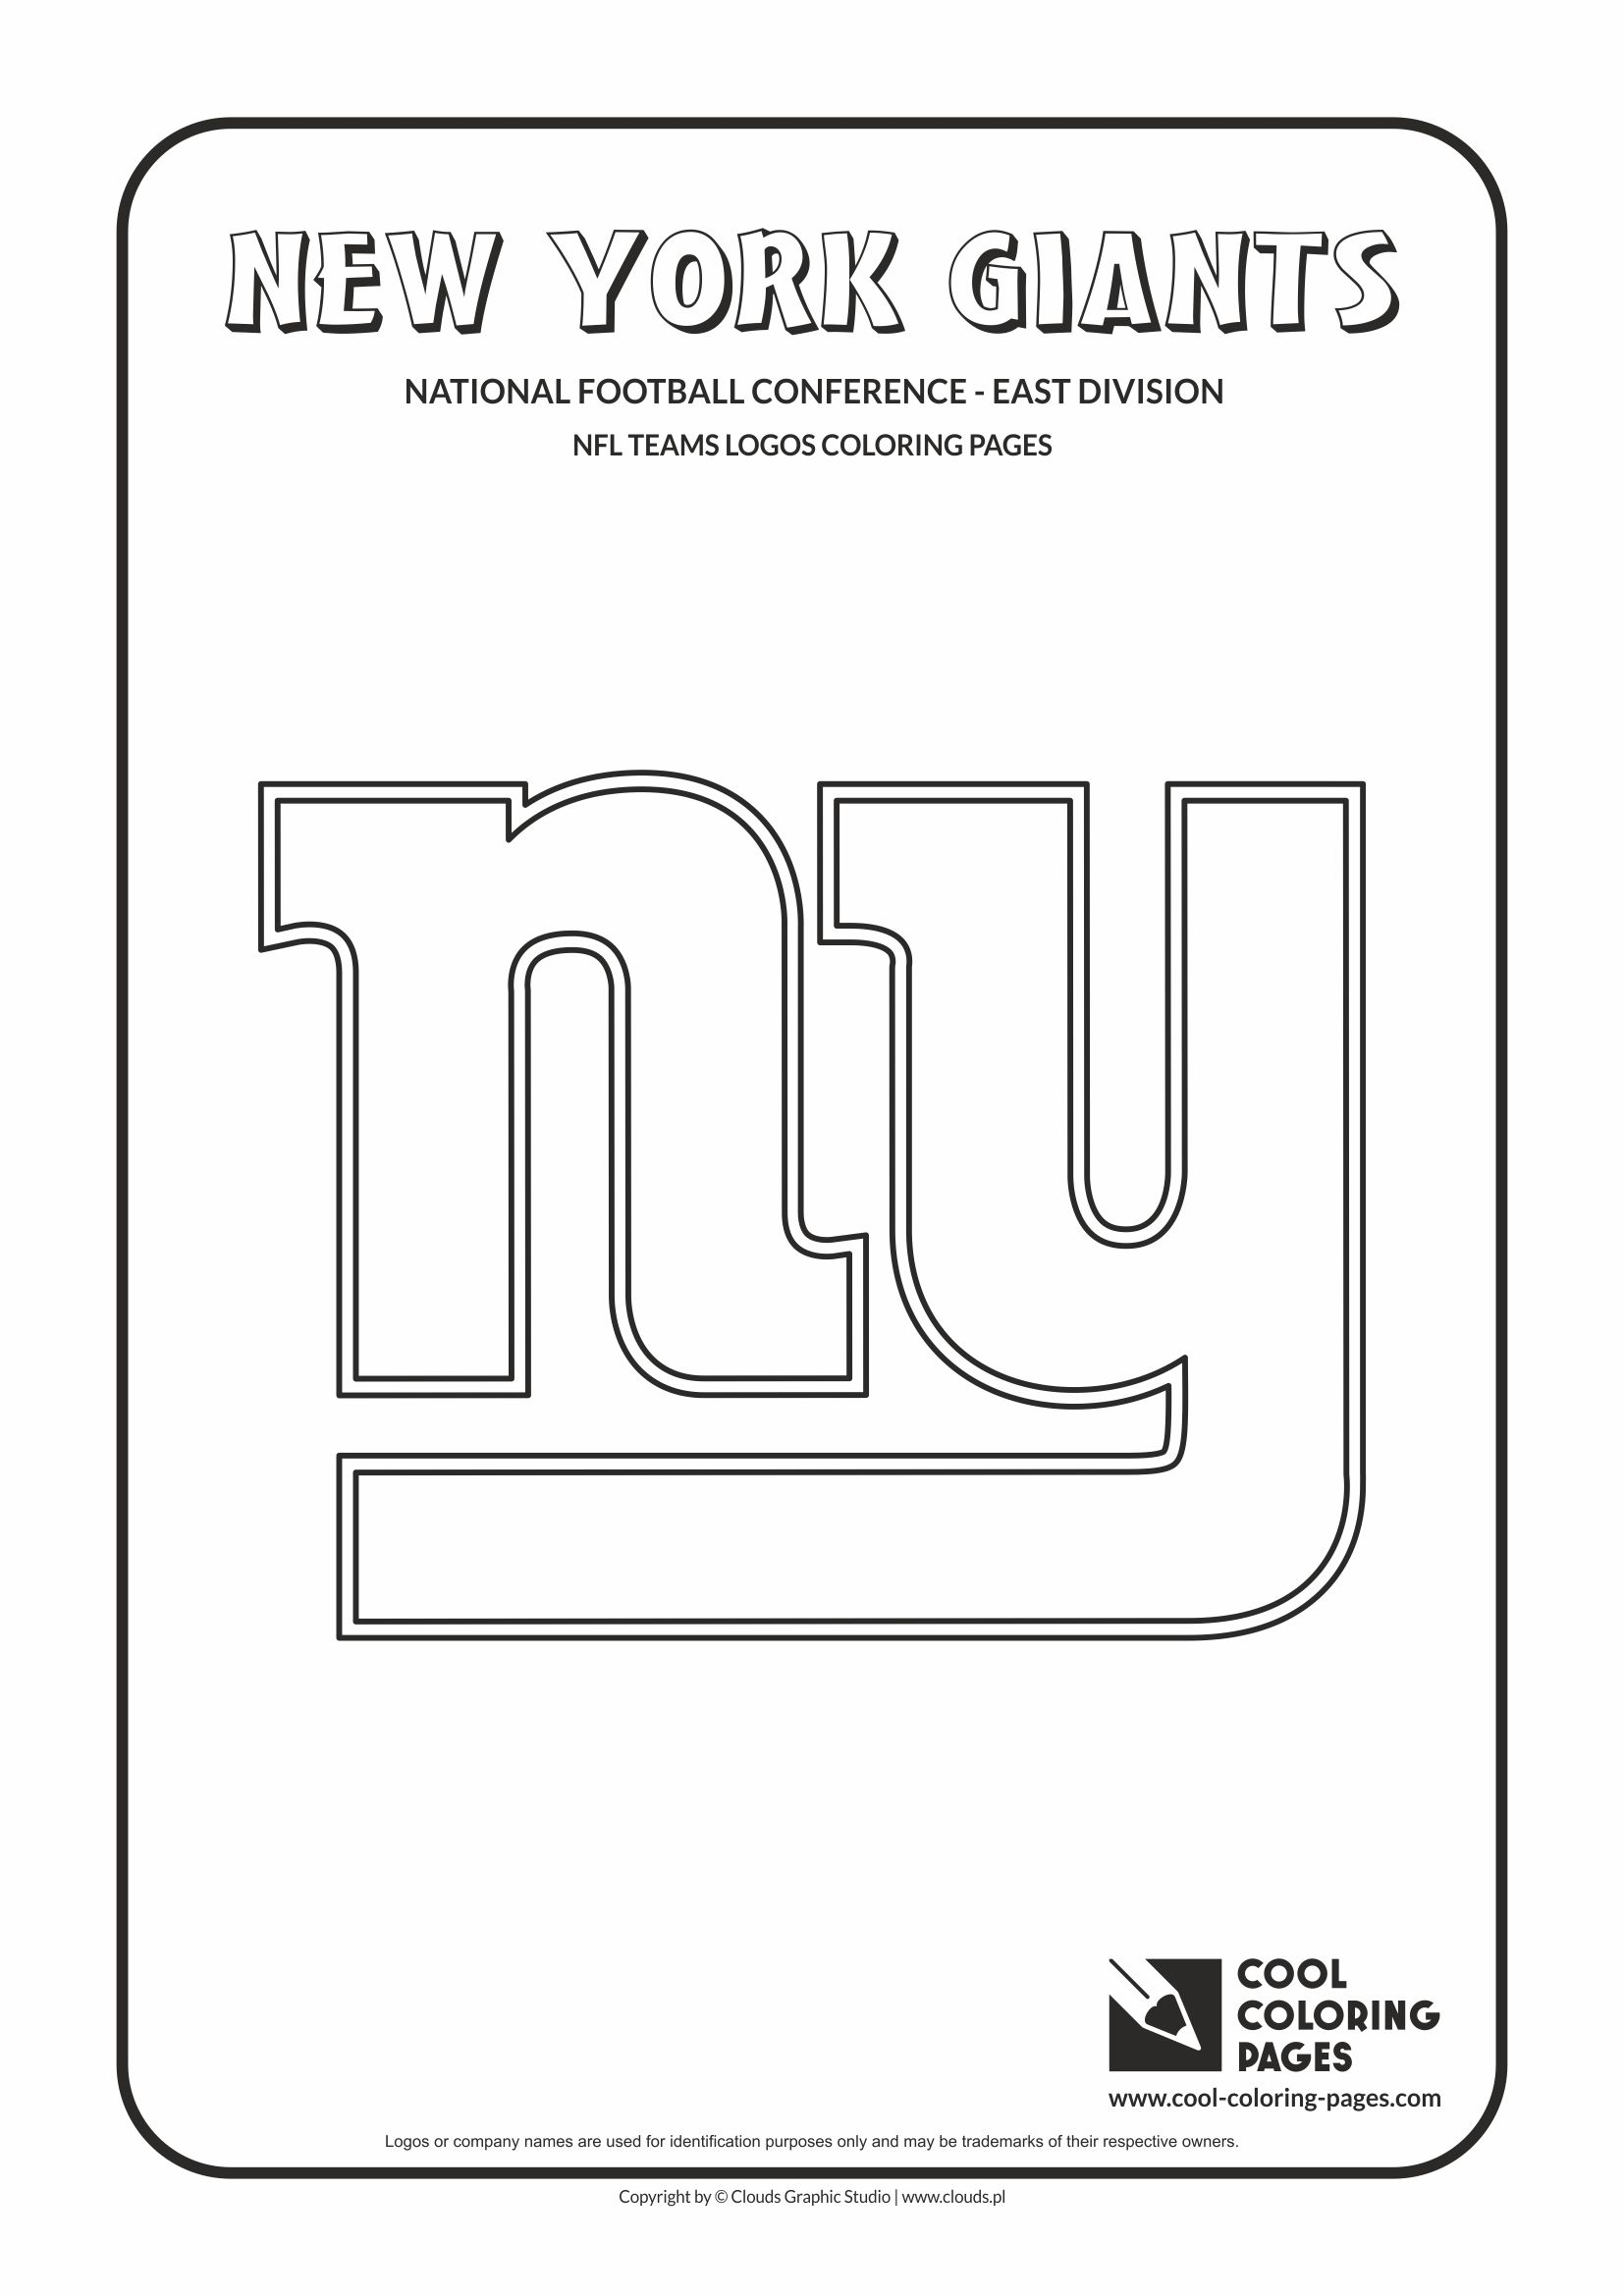 Cool Coloring Pages - NFL American Football Clubs Logos - National Football Conference - East Division / New York Giants logo / Coloring page with New York Giants logo